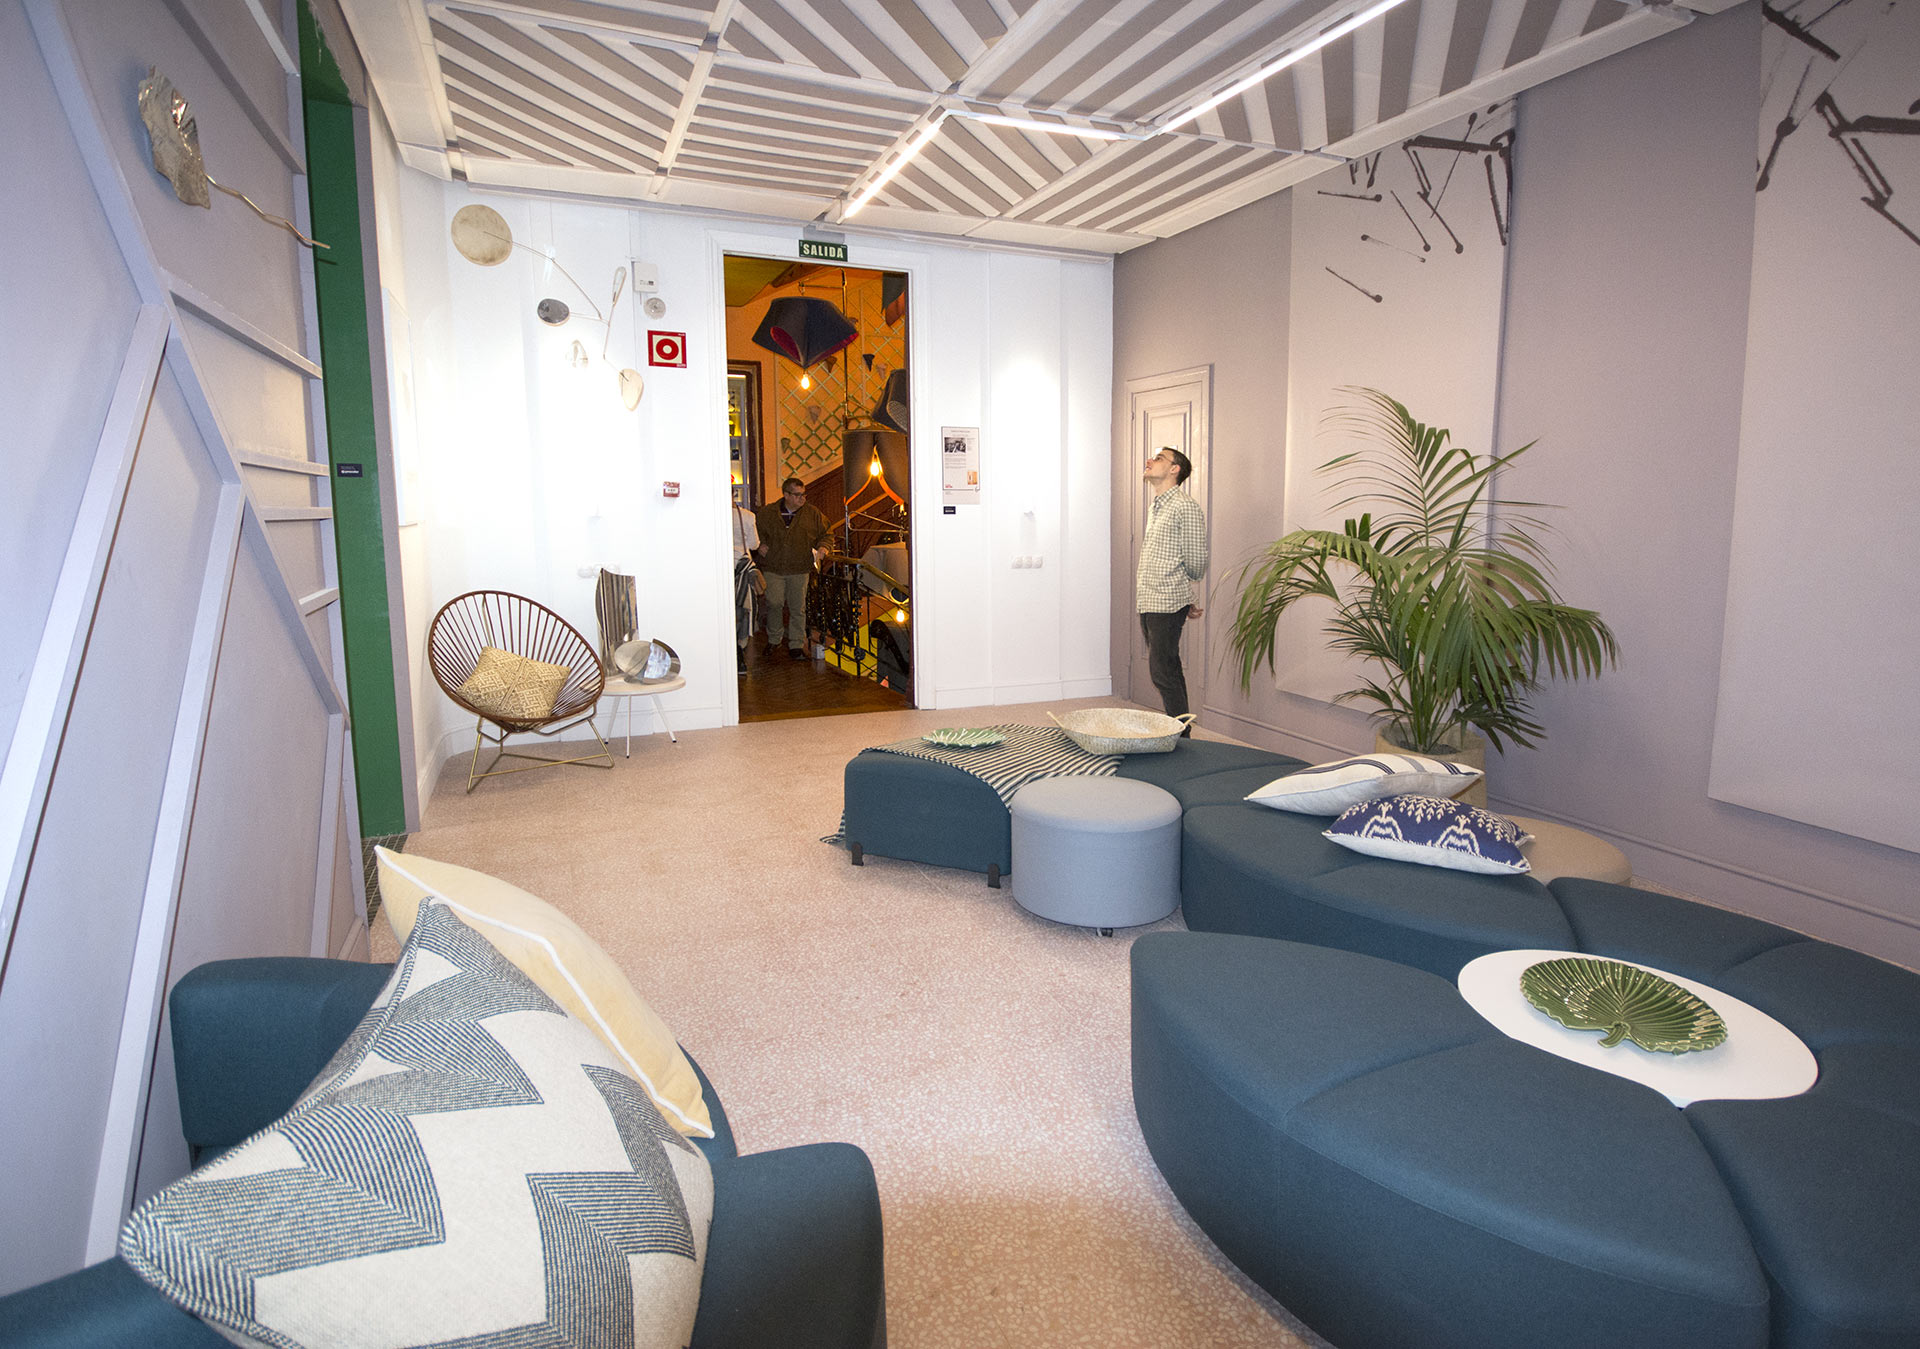 VIVES at the pink lobby of Casadecor 2018, 28 February